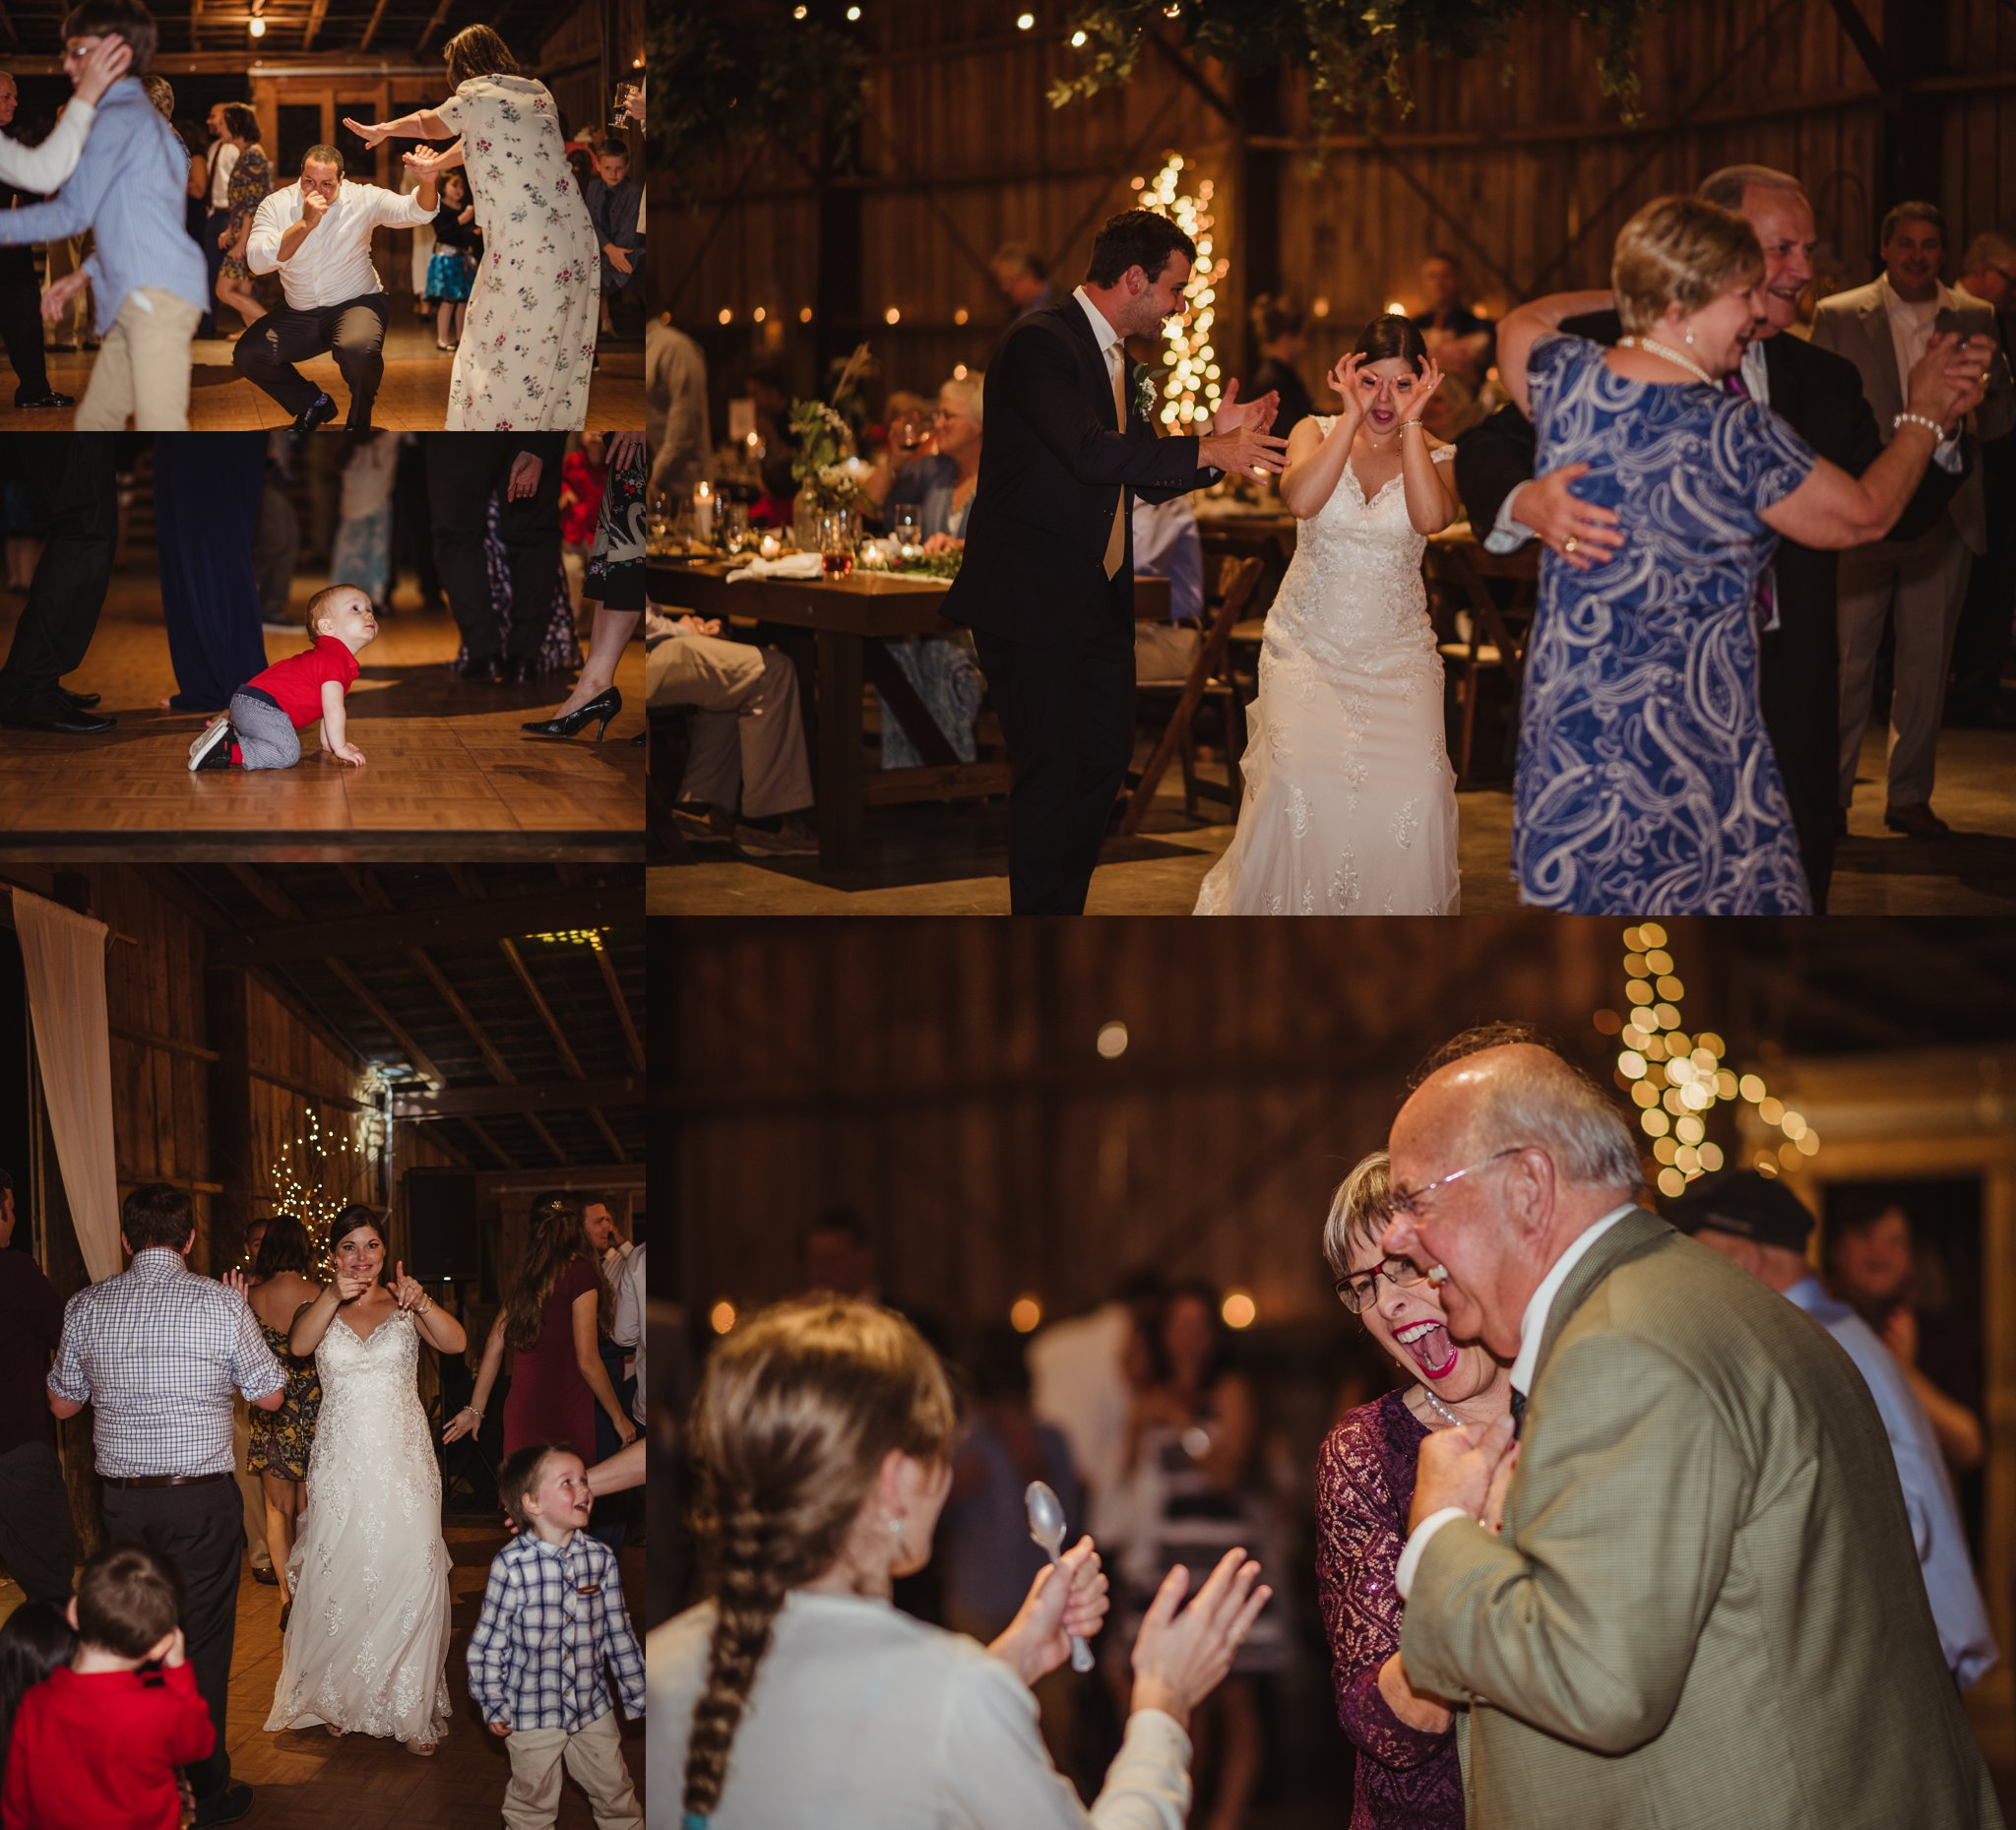 The bride and groom and their guests enjoy the anniversary dance during their wedding reception at the Little Herb House in Raleigh, North Carolina. Photos by Rose Trail Images.